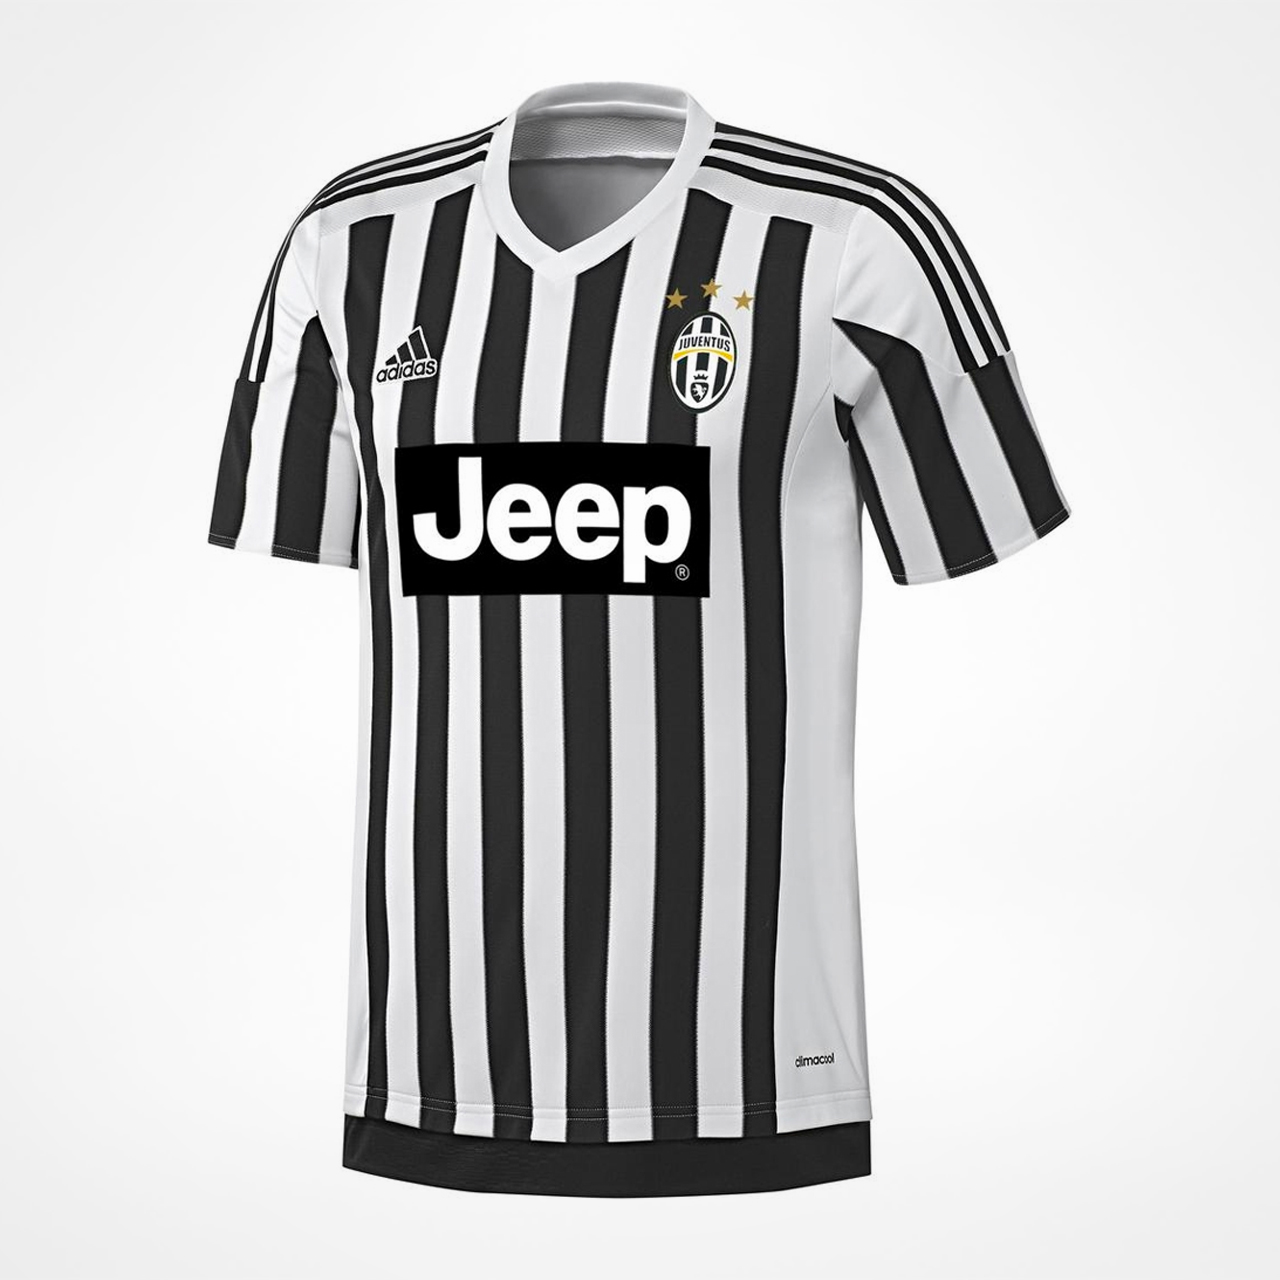 Juventus home jersey 2015 16 supportersplace for Classic new jersey house music